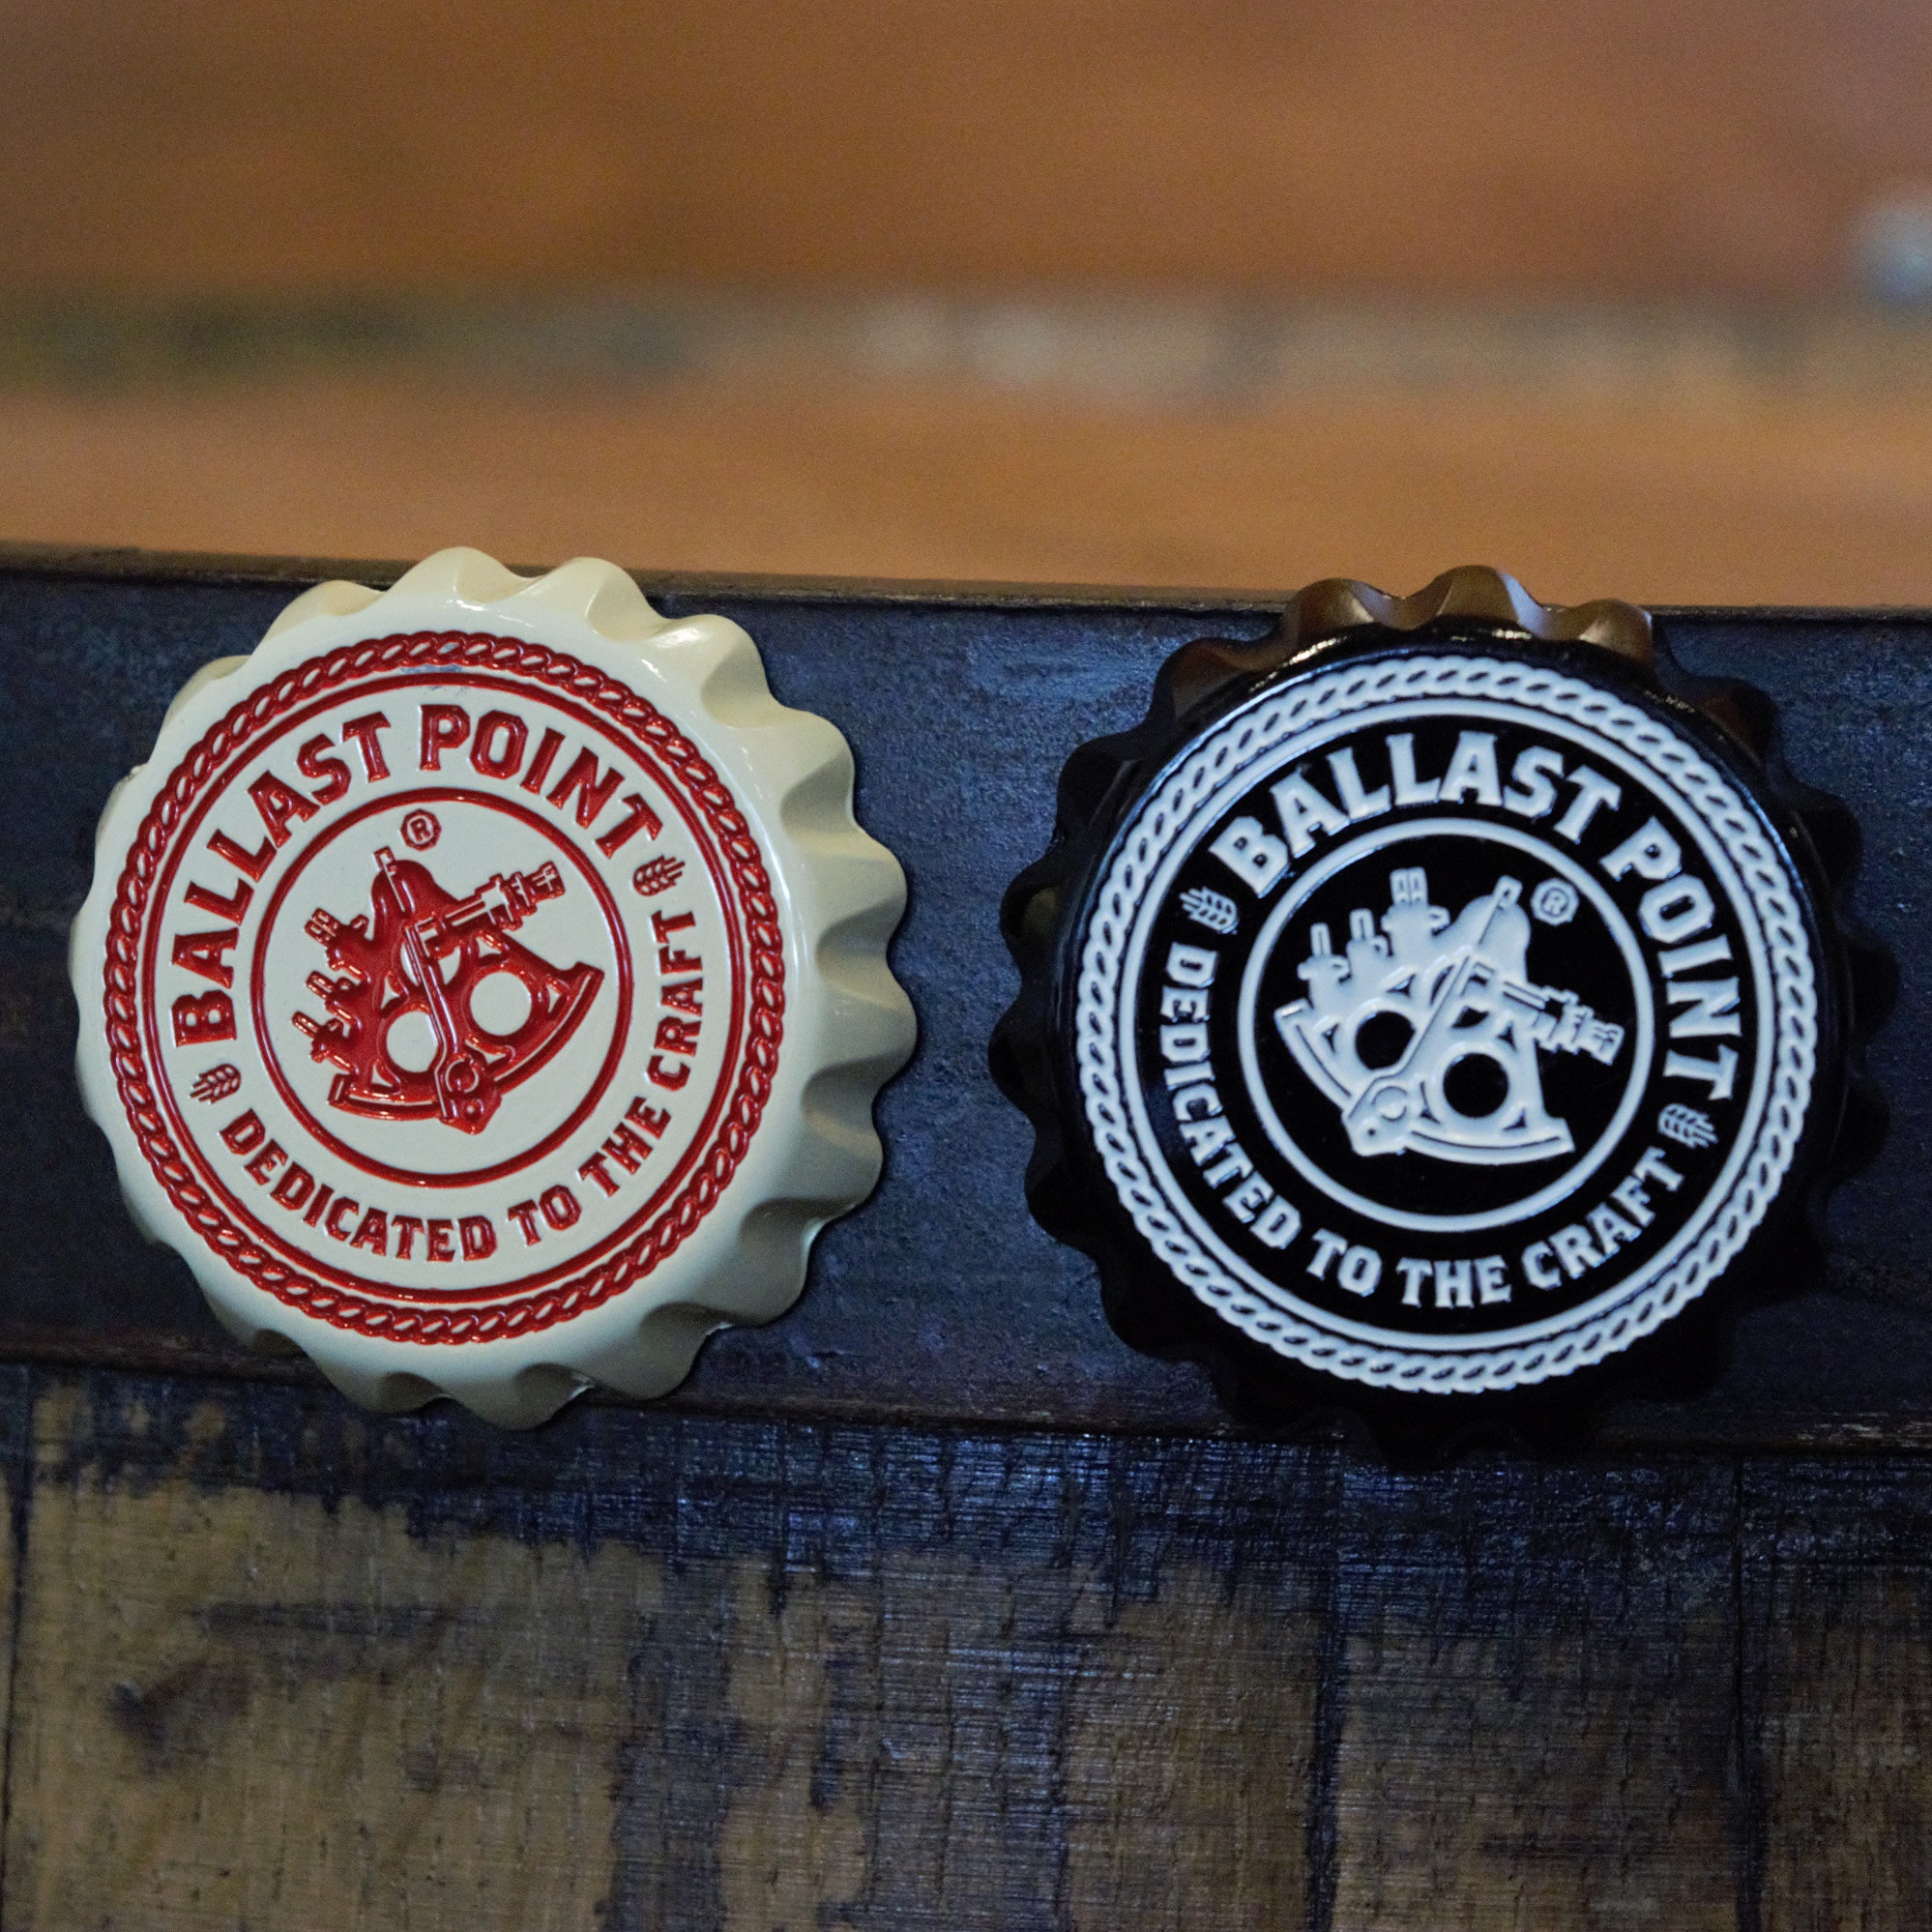 Ballast Point Bottle Cap Magnet Opener THUMBNAIL